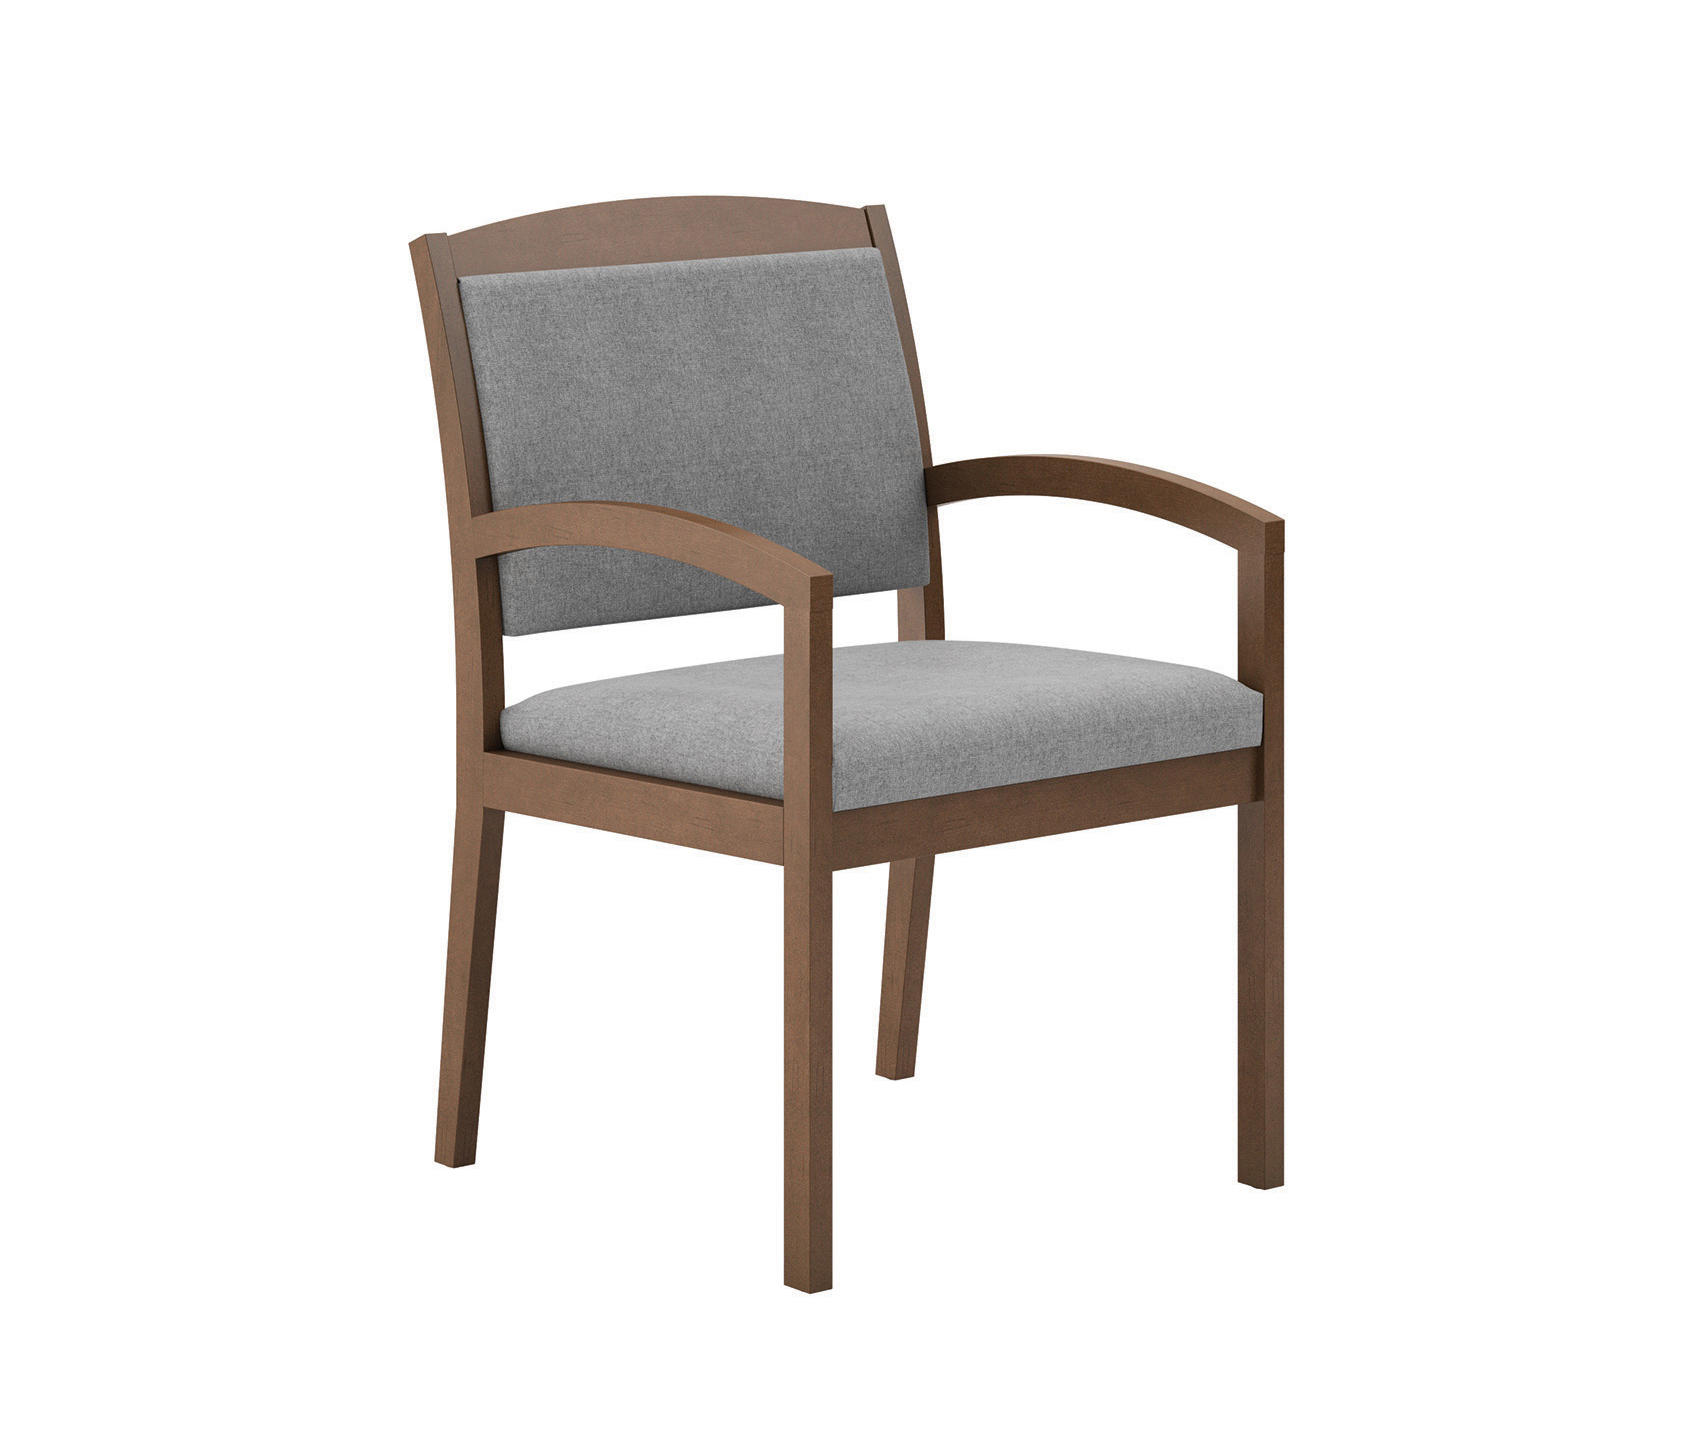 Timberlane seating de national office furniture chaises